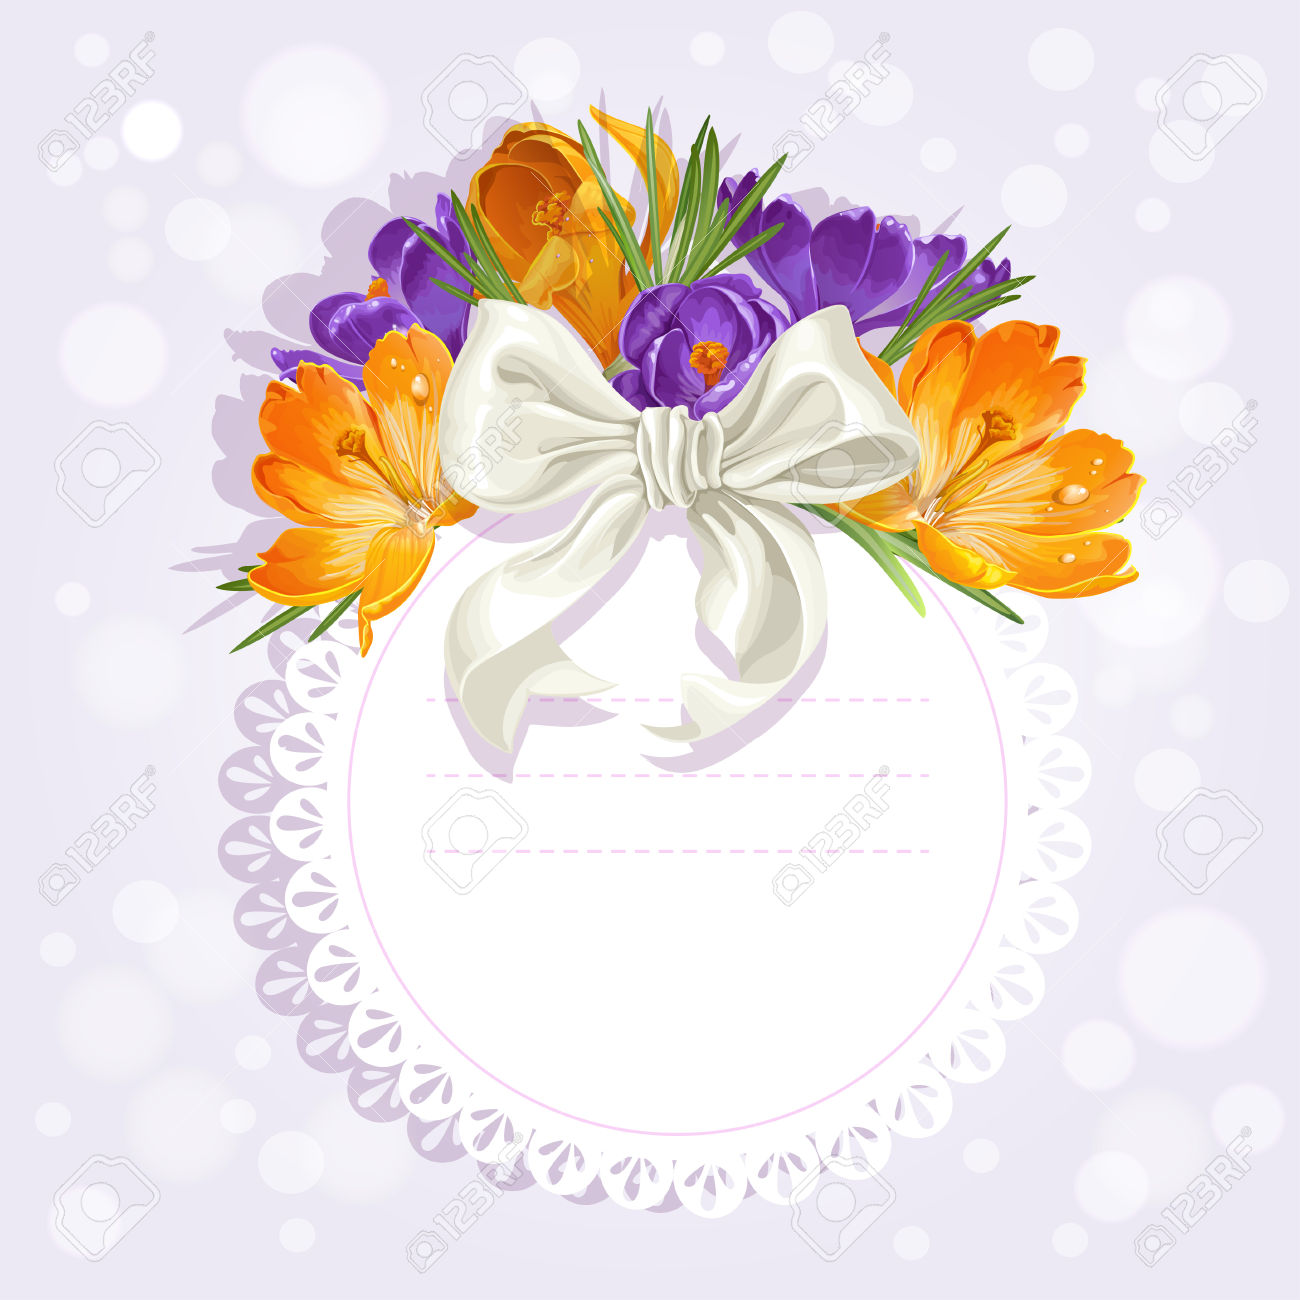 Openwork Card With Flowers Beautiful Yellow And Purple Crocuses.